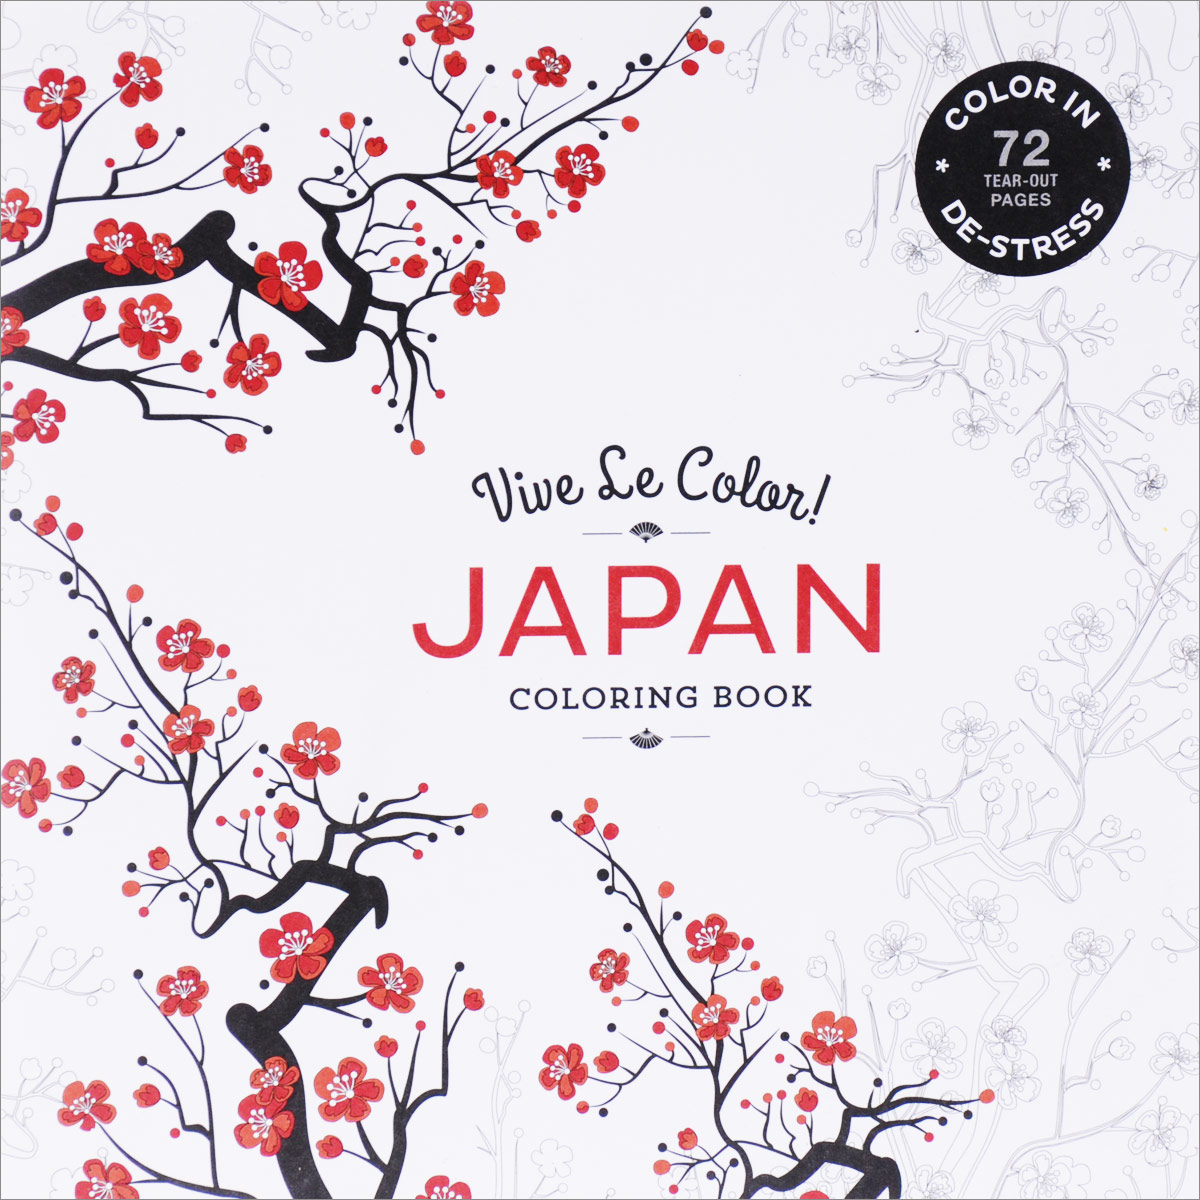 Japan: Coloring Book coloring of trees